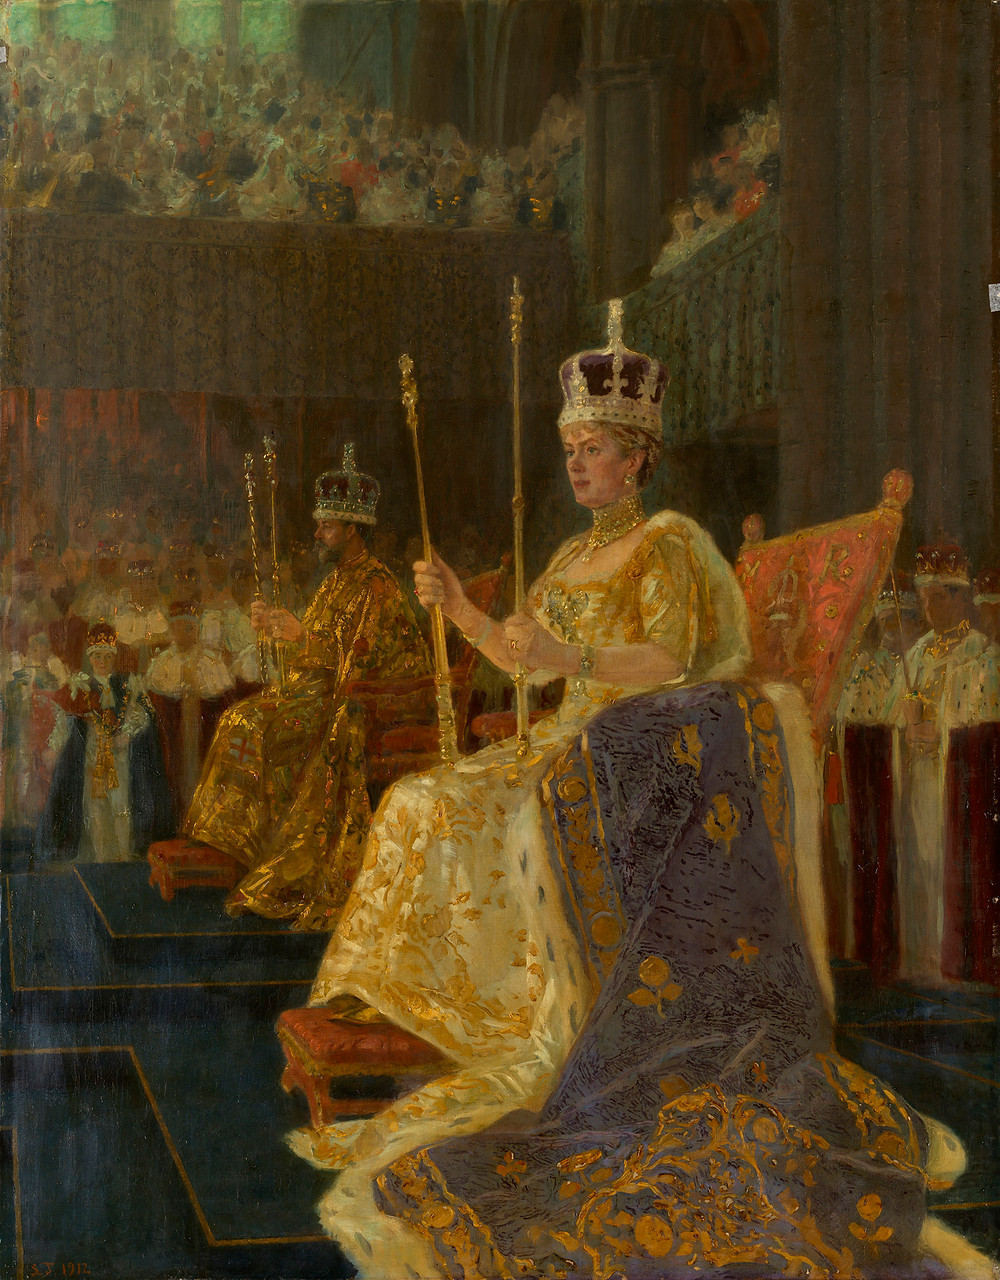 King George V & Queen Mary Enthroned, by Laurits Tuxen